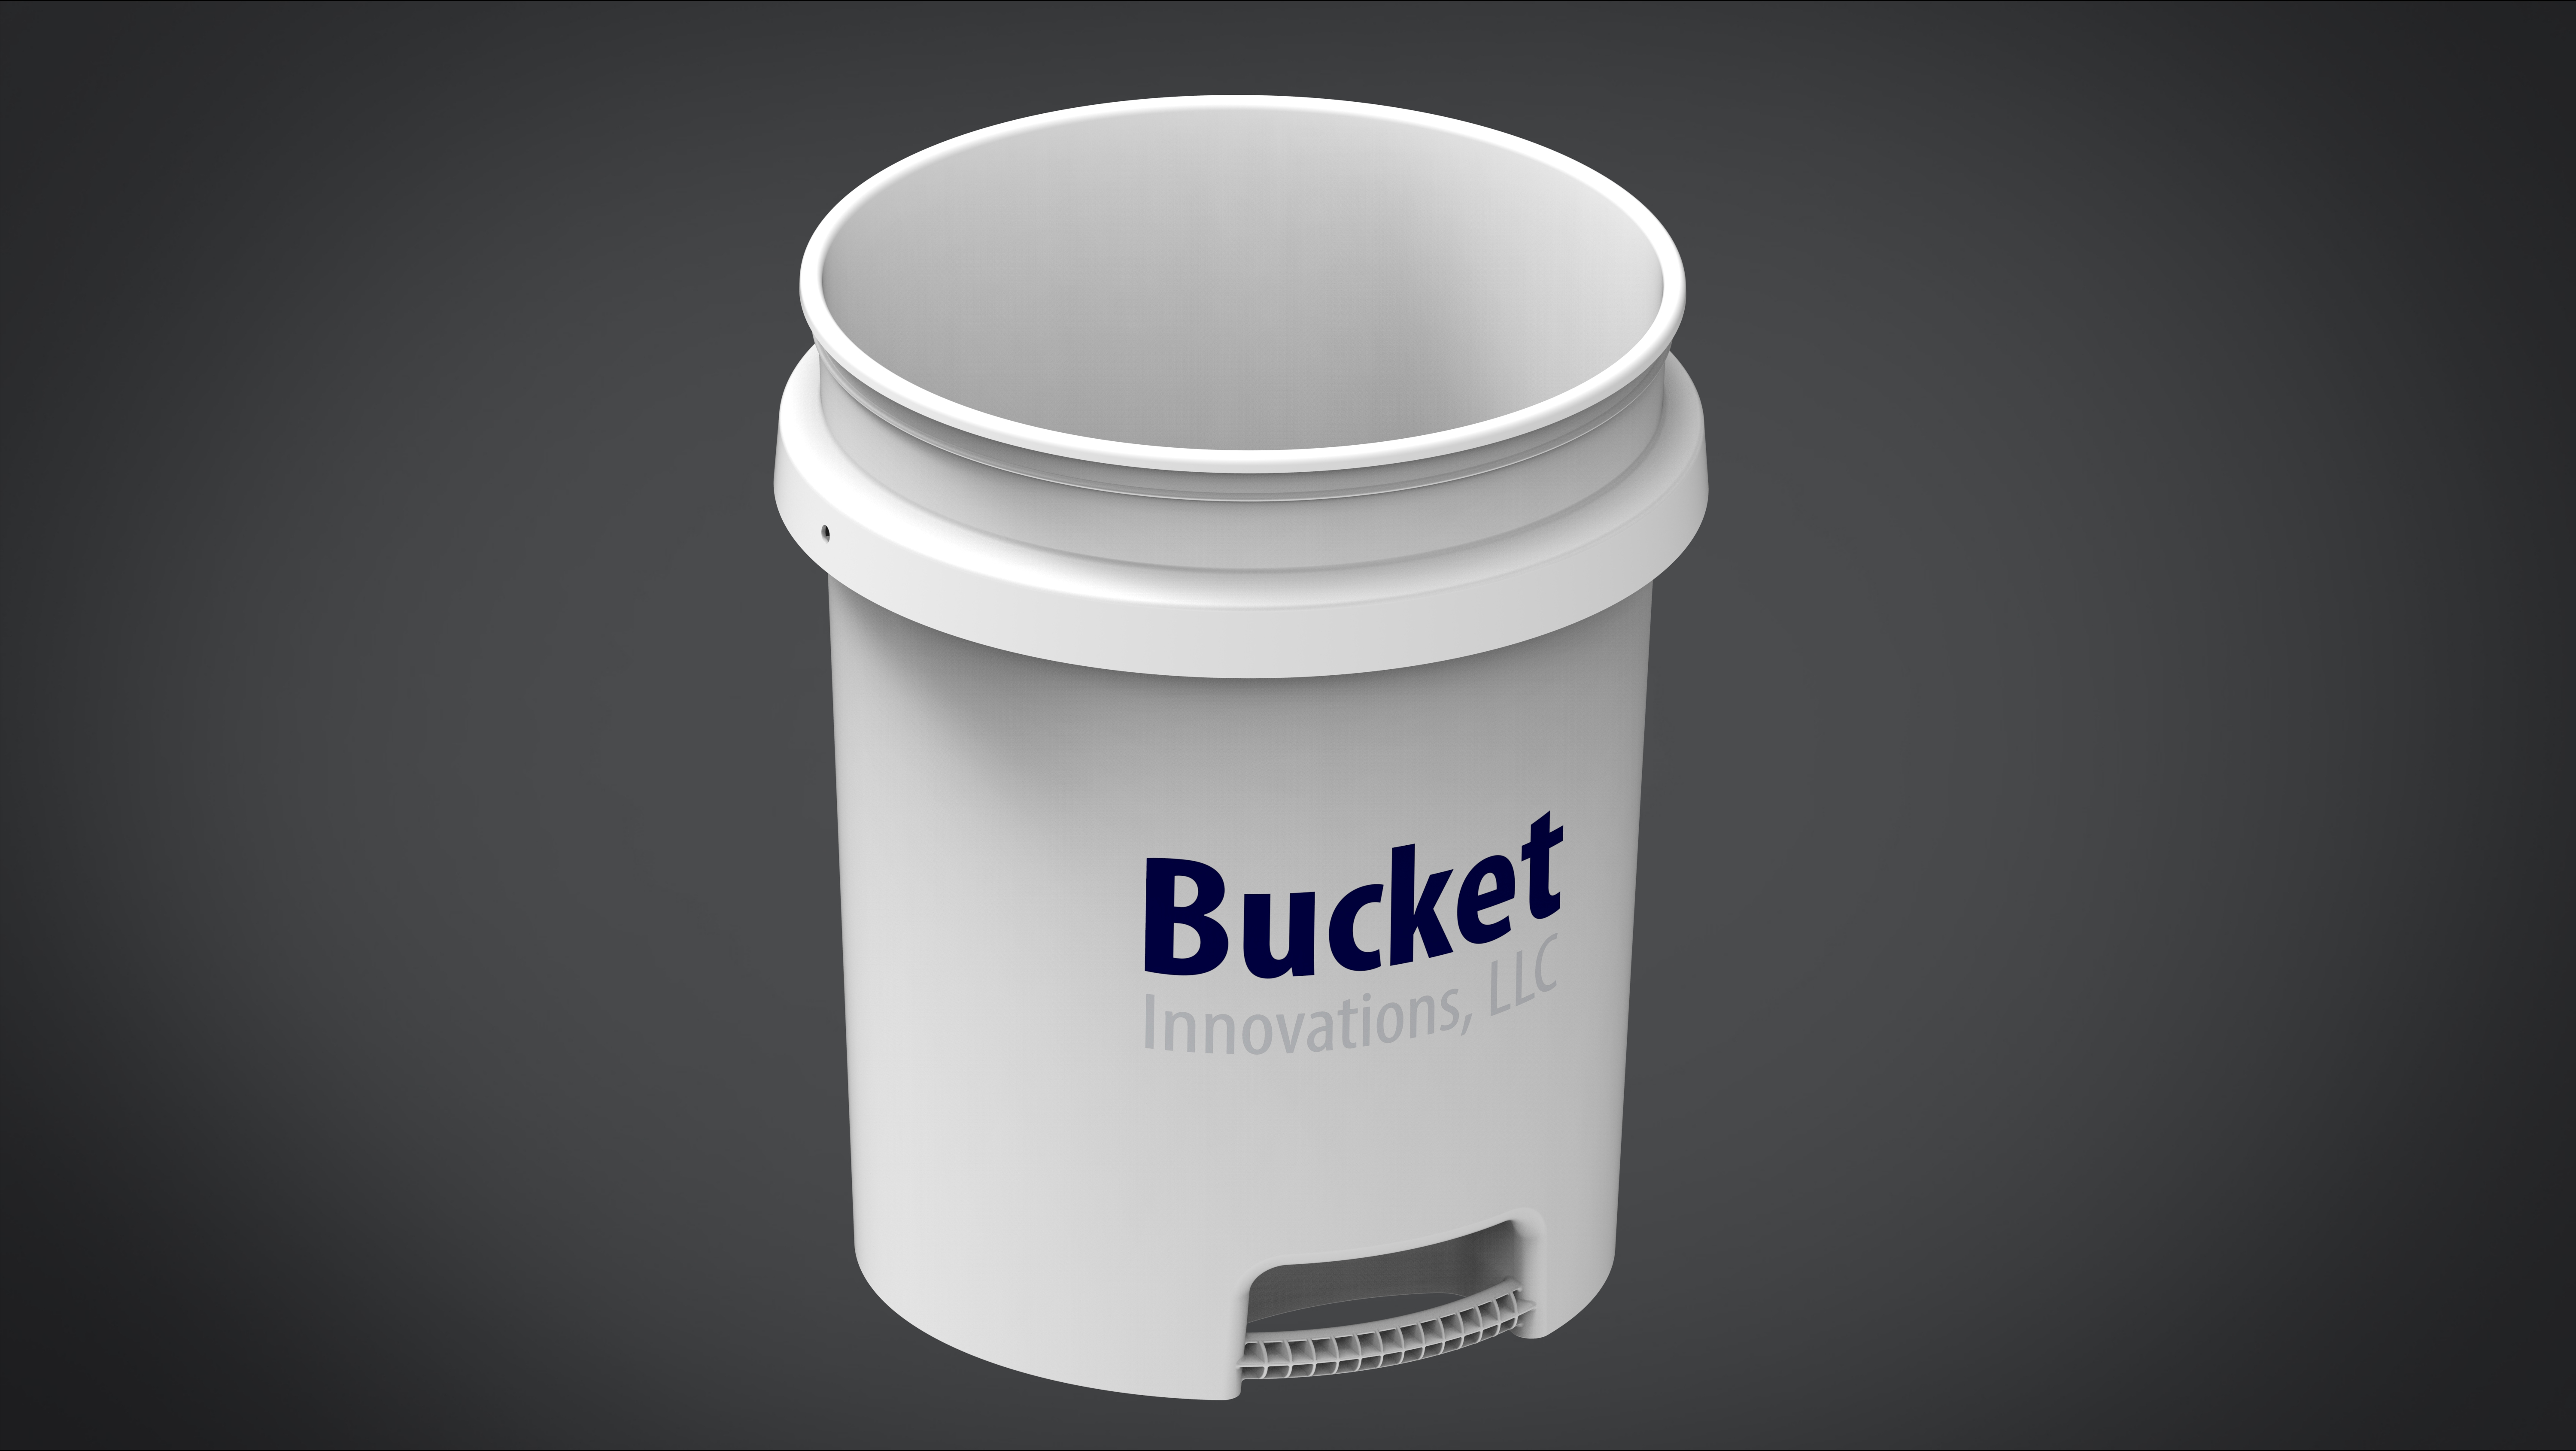 Bucket Innovations Llc A Subsidiary Of Global Consumer